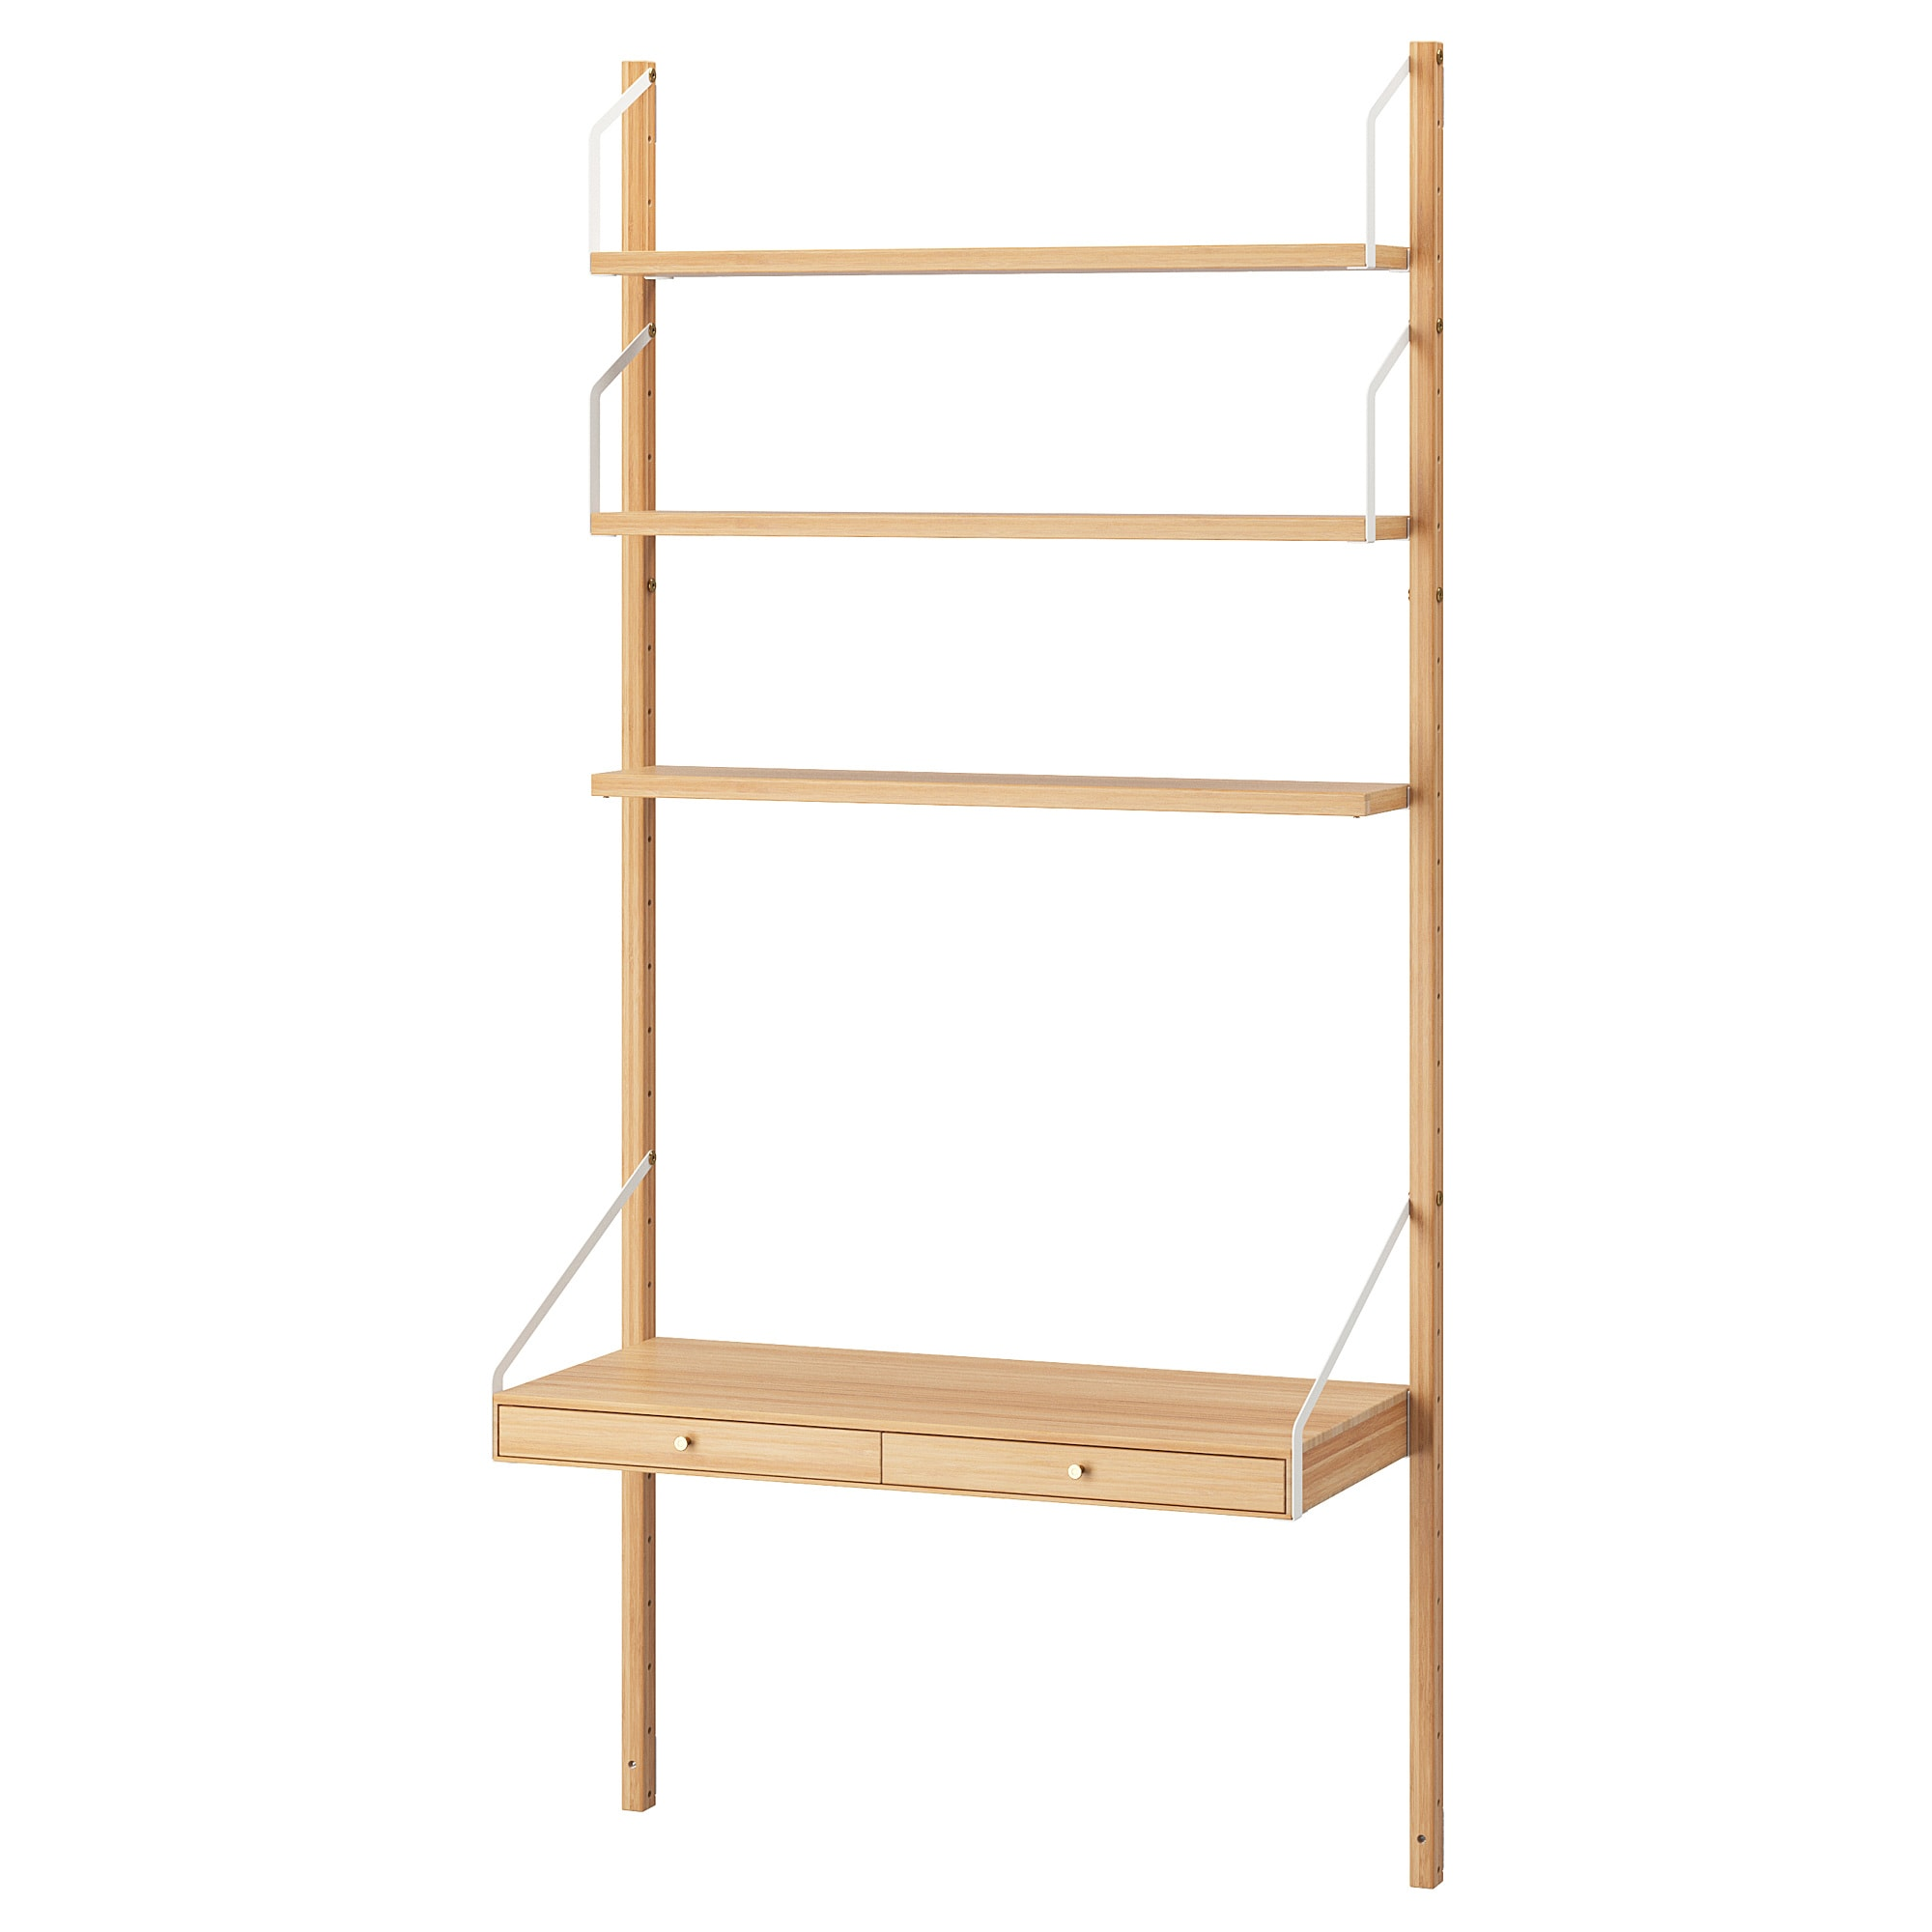 IKEA, SVALNÄS Wall-mounted workspace combination, bamboo, $210